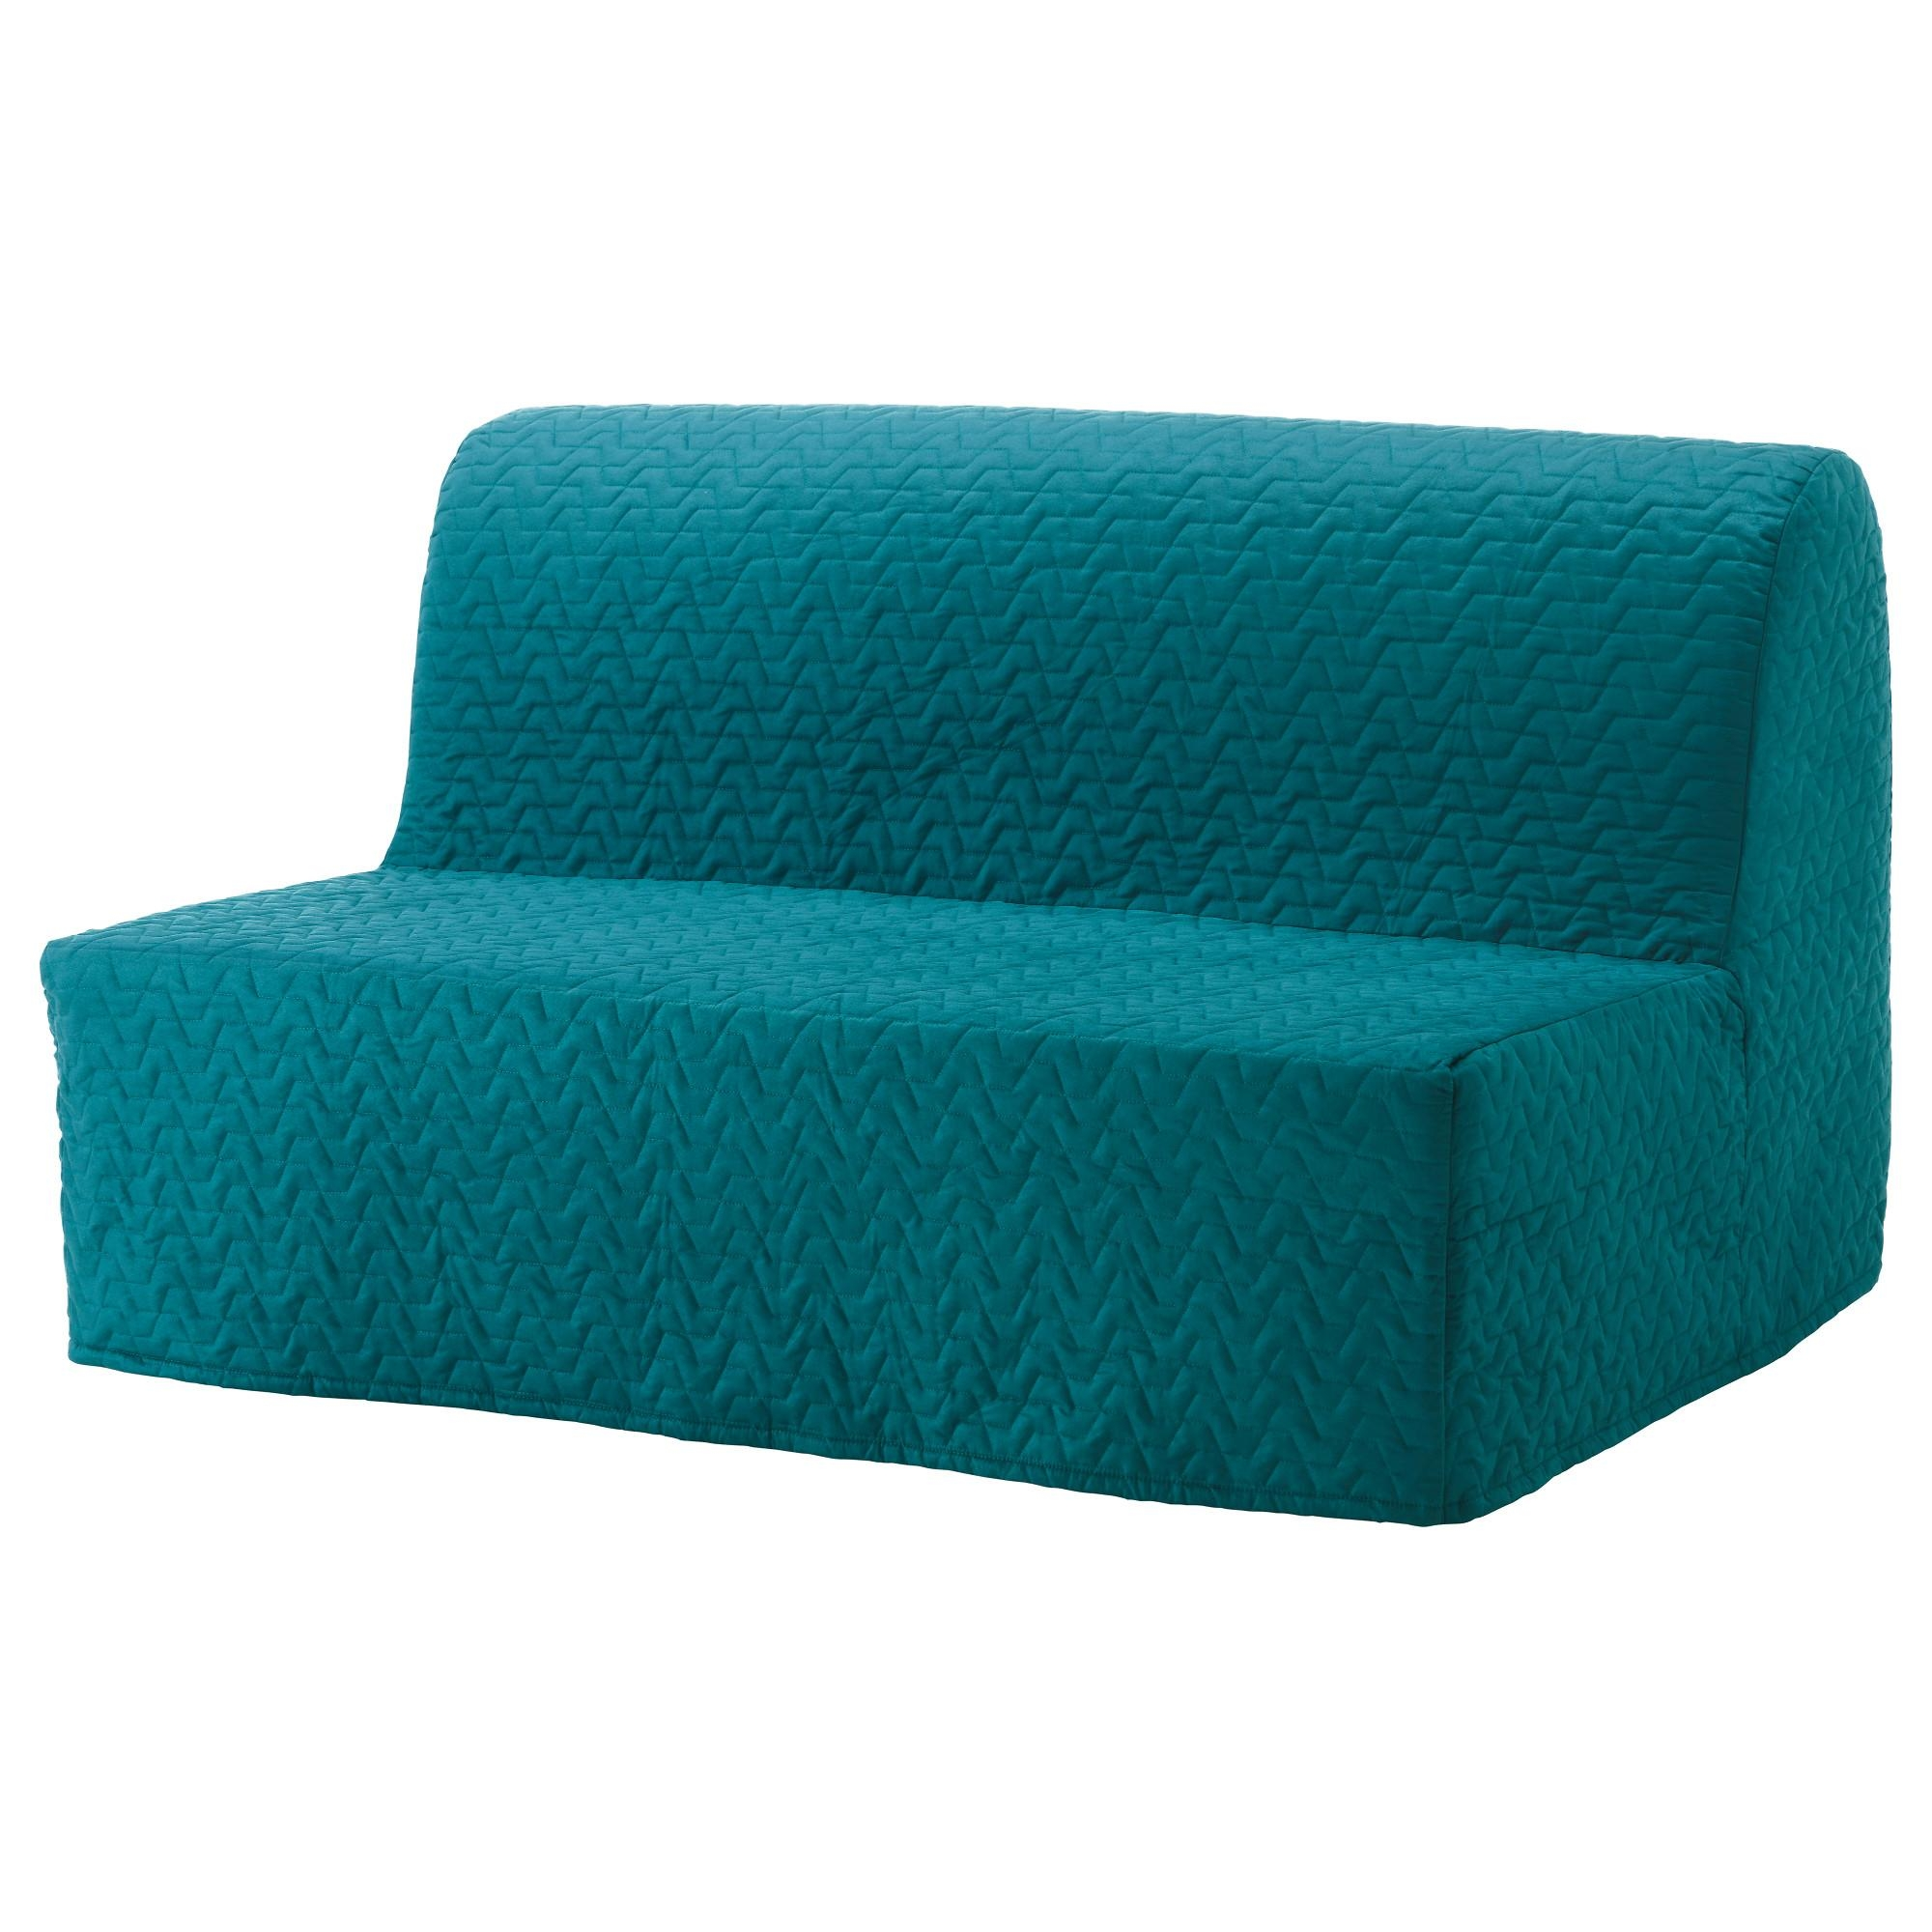 Furniture: Ikea Sofa Beds | Sofa With Pull Out Bed Ikea | Ikea Intended For Aqua Sofa Beds (Image 12 of 20)